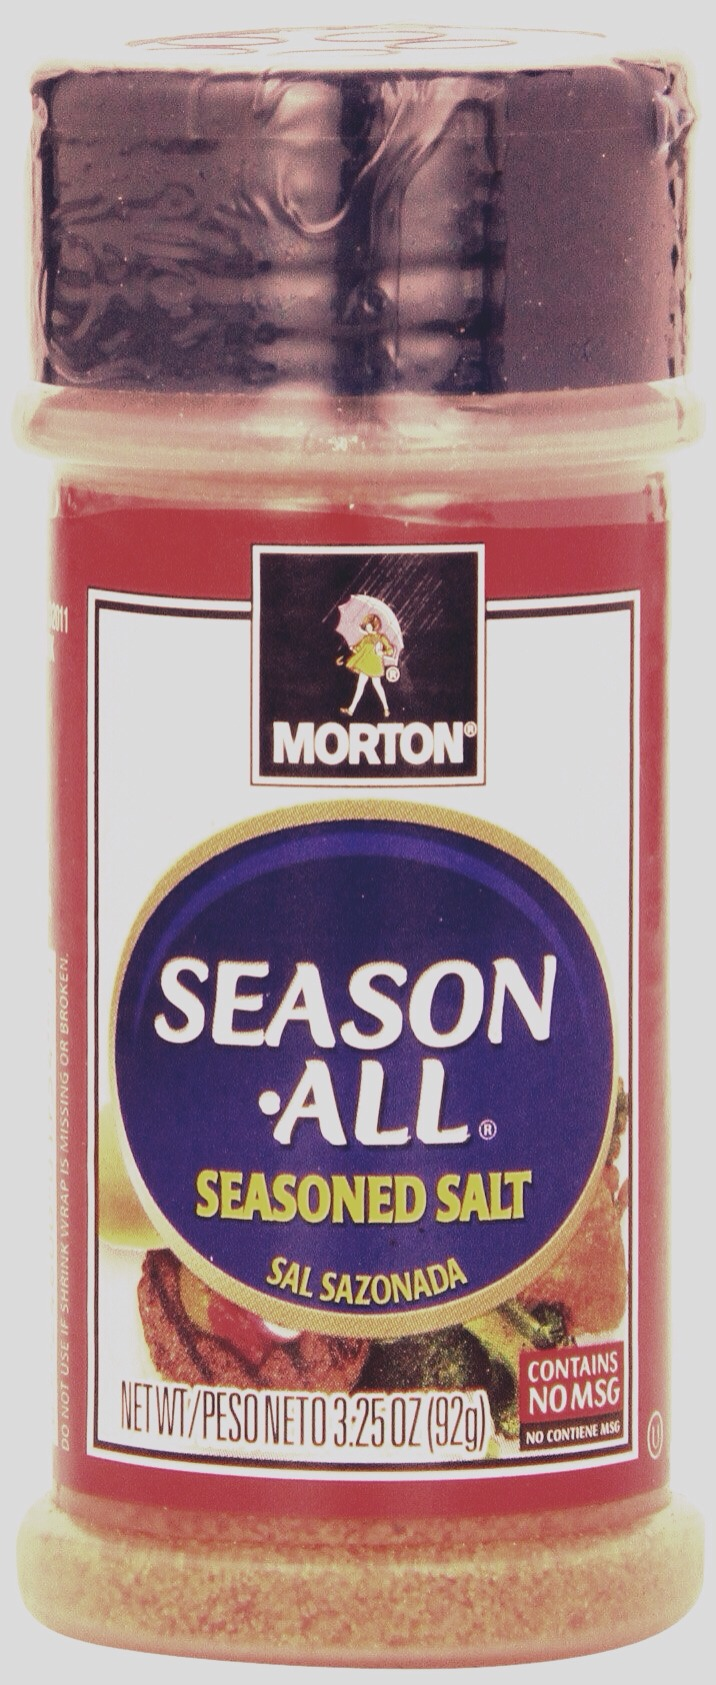 seasoning salt is the first thing you'll need.